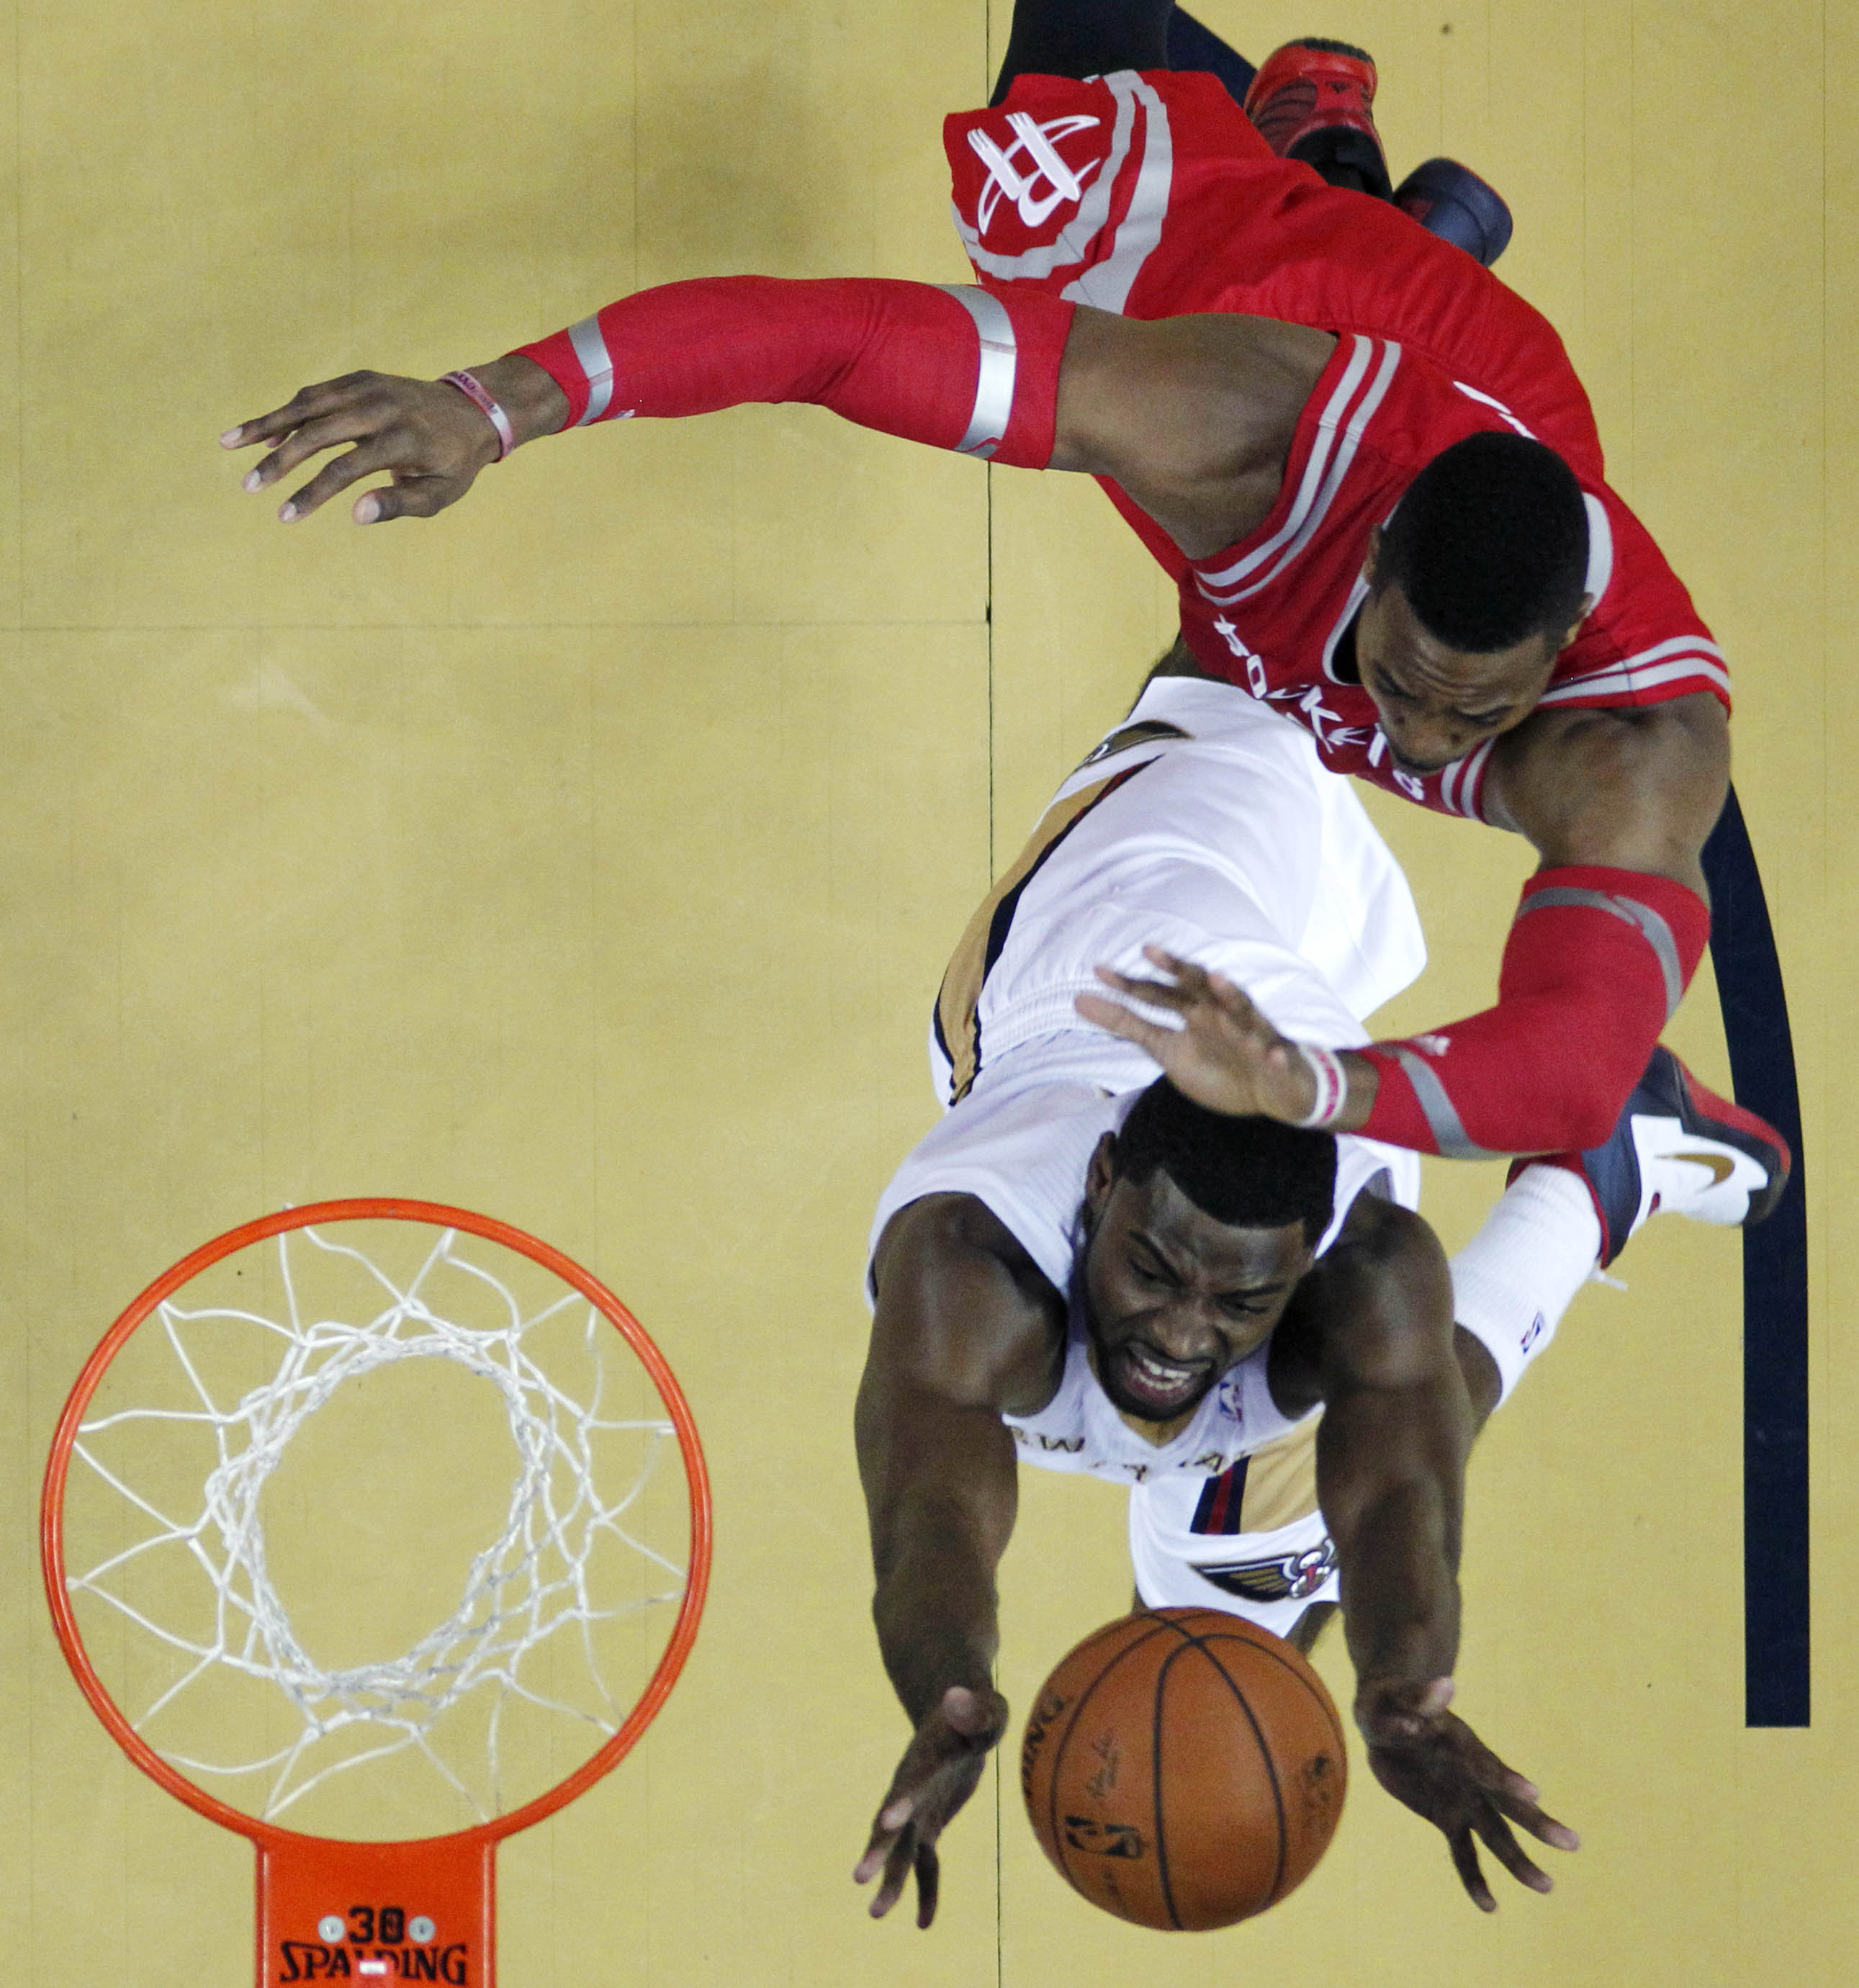 Evans leads Pelicans past Rockets, 105-100